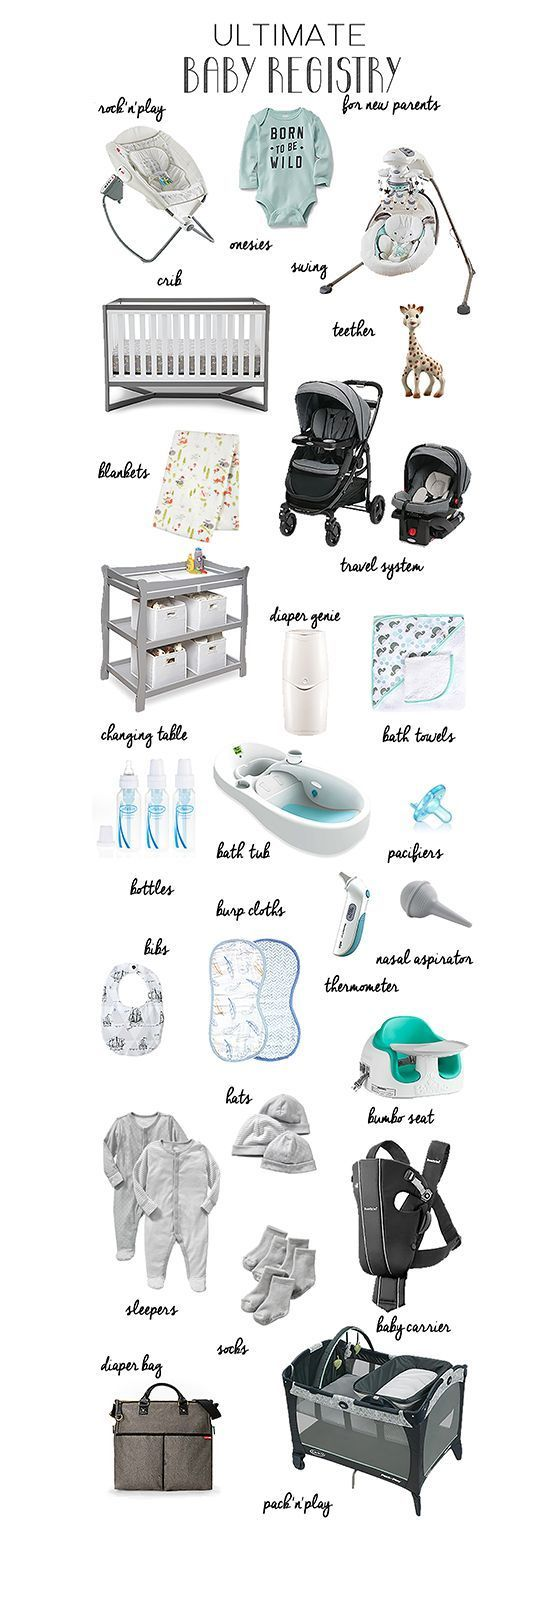 Ultimate Baby Registry for New Parents | A list of everything you really need | Newborn Necessities | Baby registry must haves | Baby registry checklist | 2015